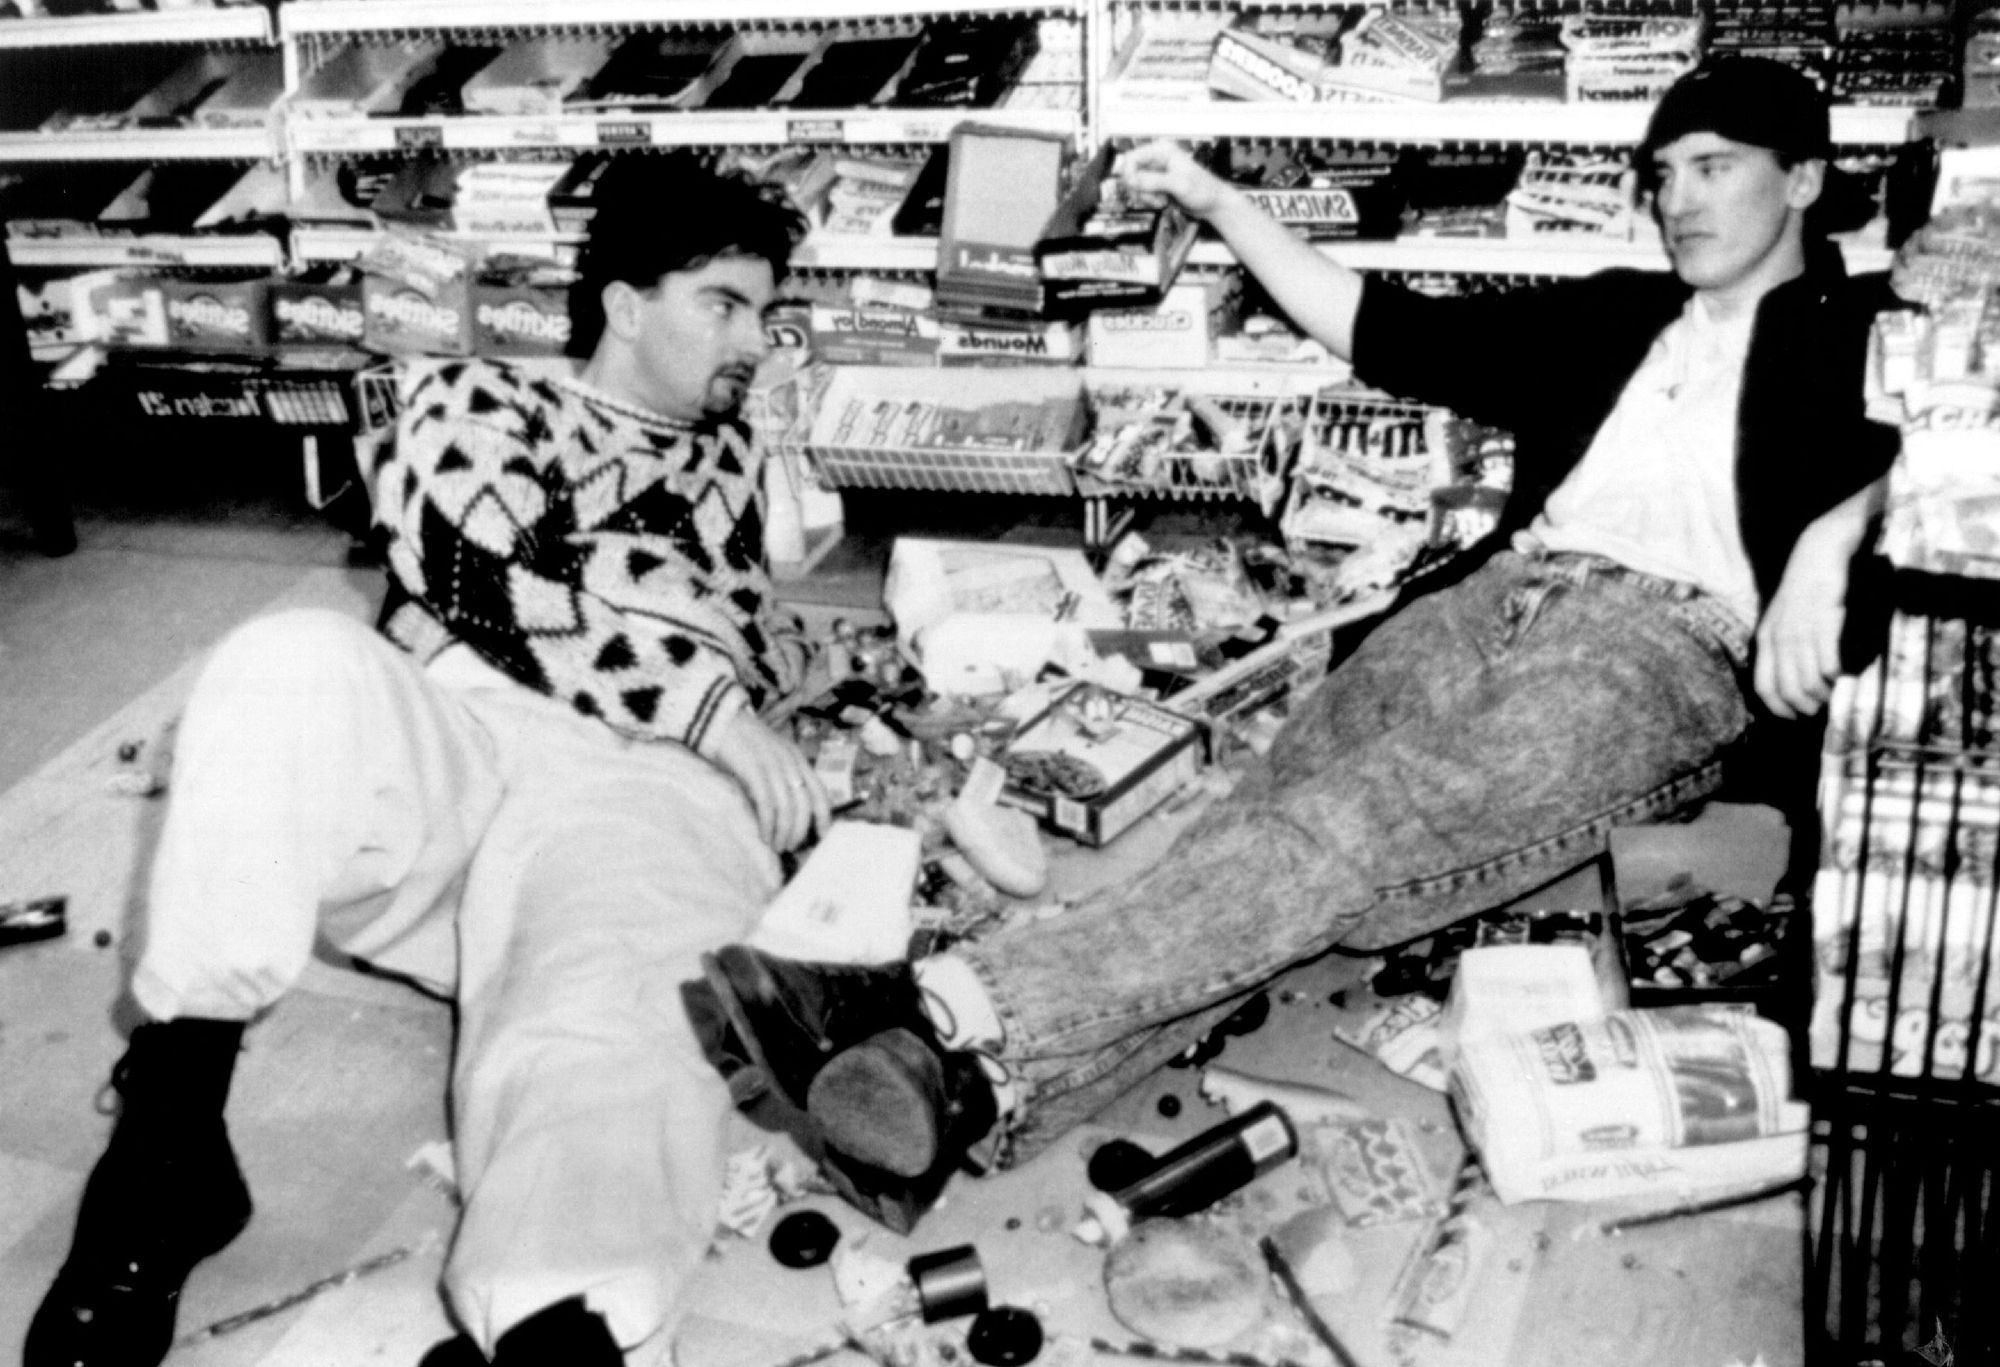 Brian O'Halloran and Jeff Anderson in Kevin Smith's 'Clerks.'